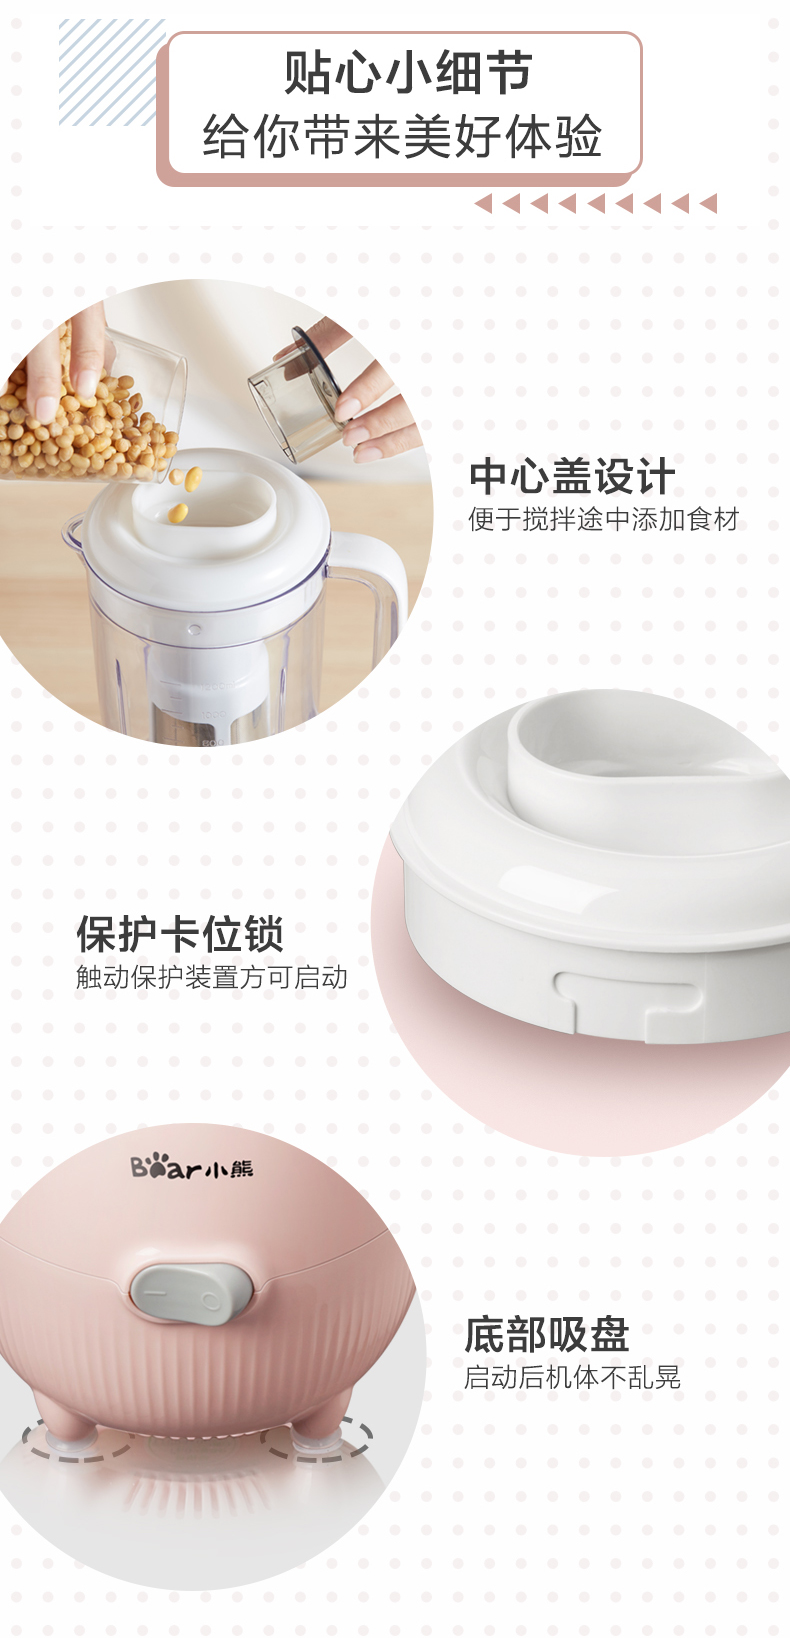 Pressed Soy Milk Cooking Machine Household Mini Small Food Bar Free Filter Baby Food Supplement Automatic Mixer 19